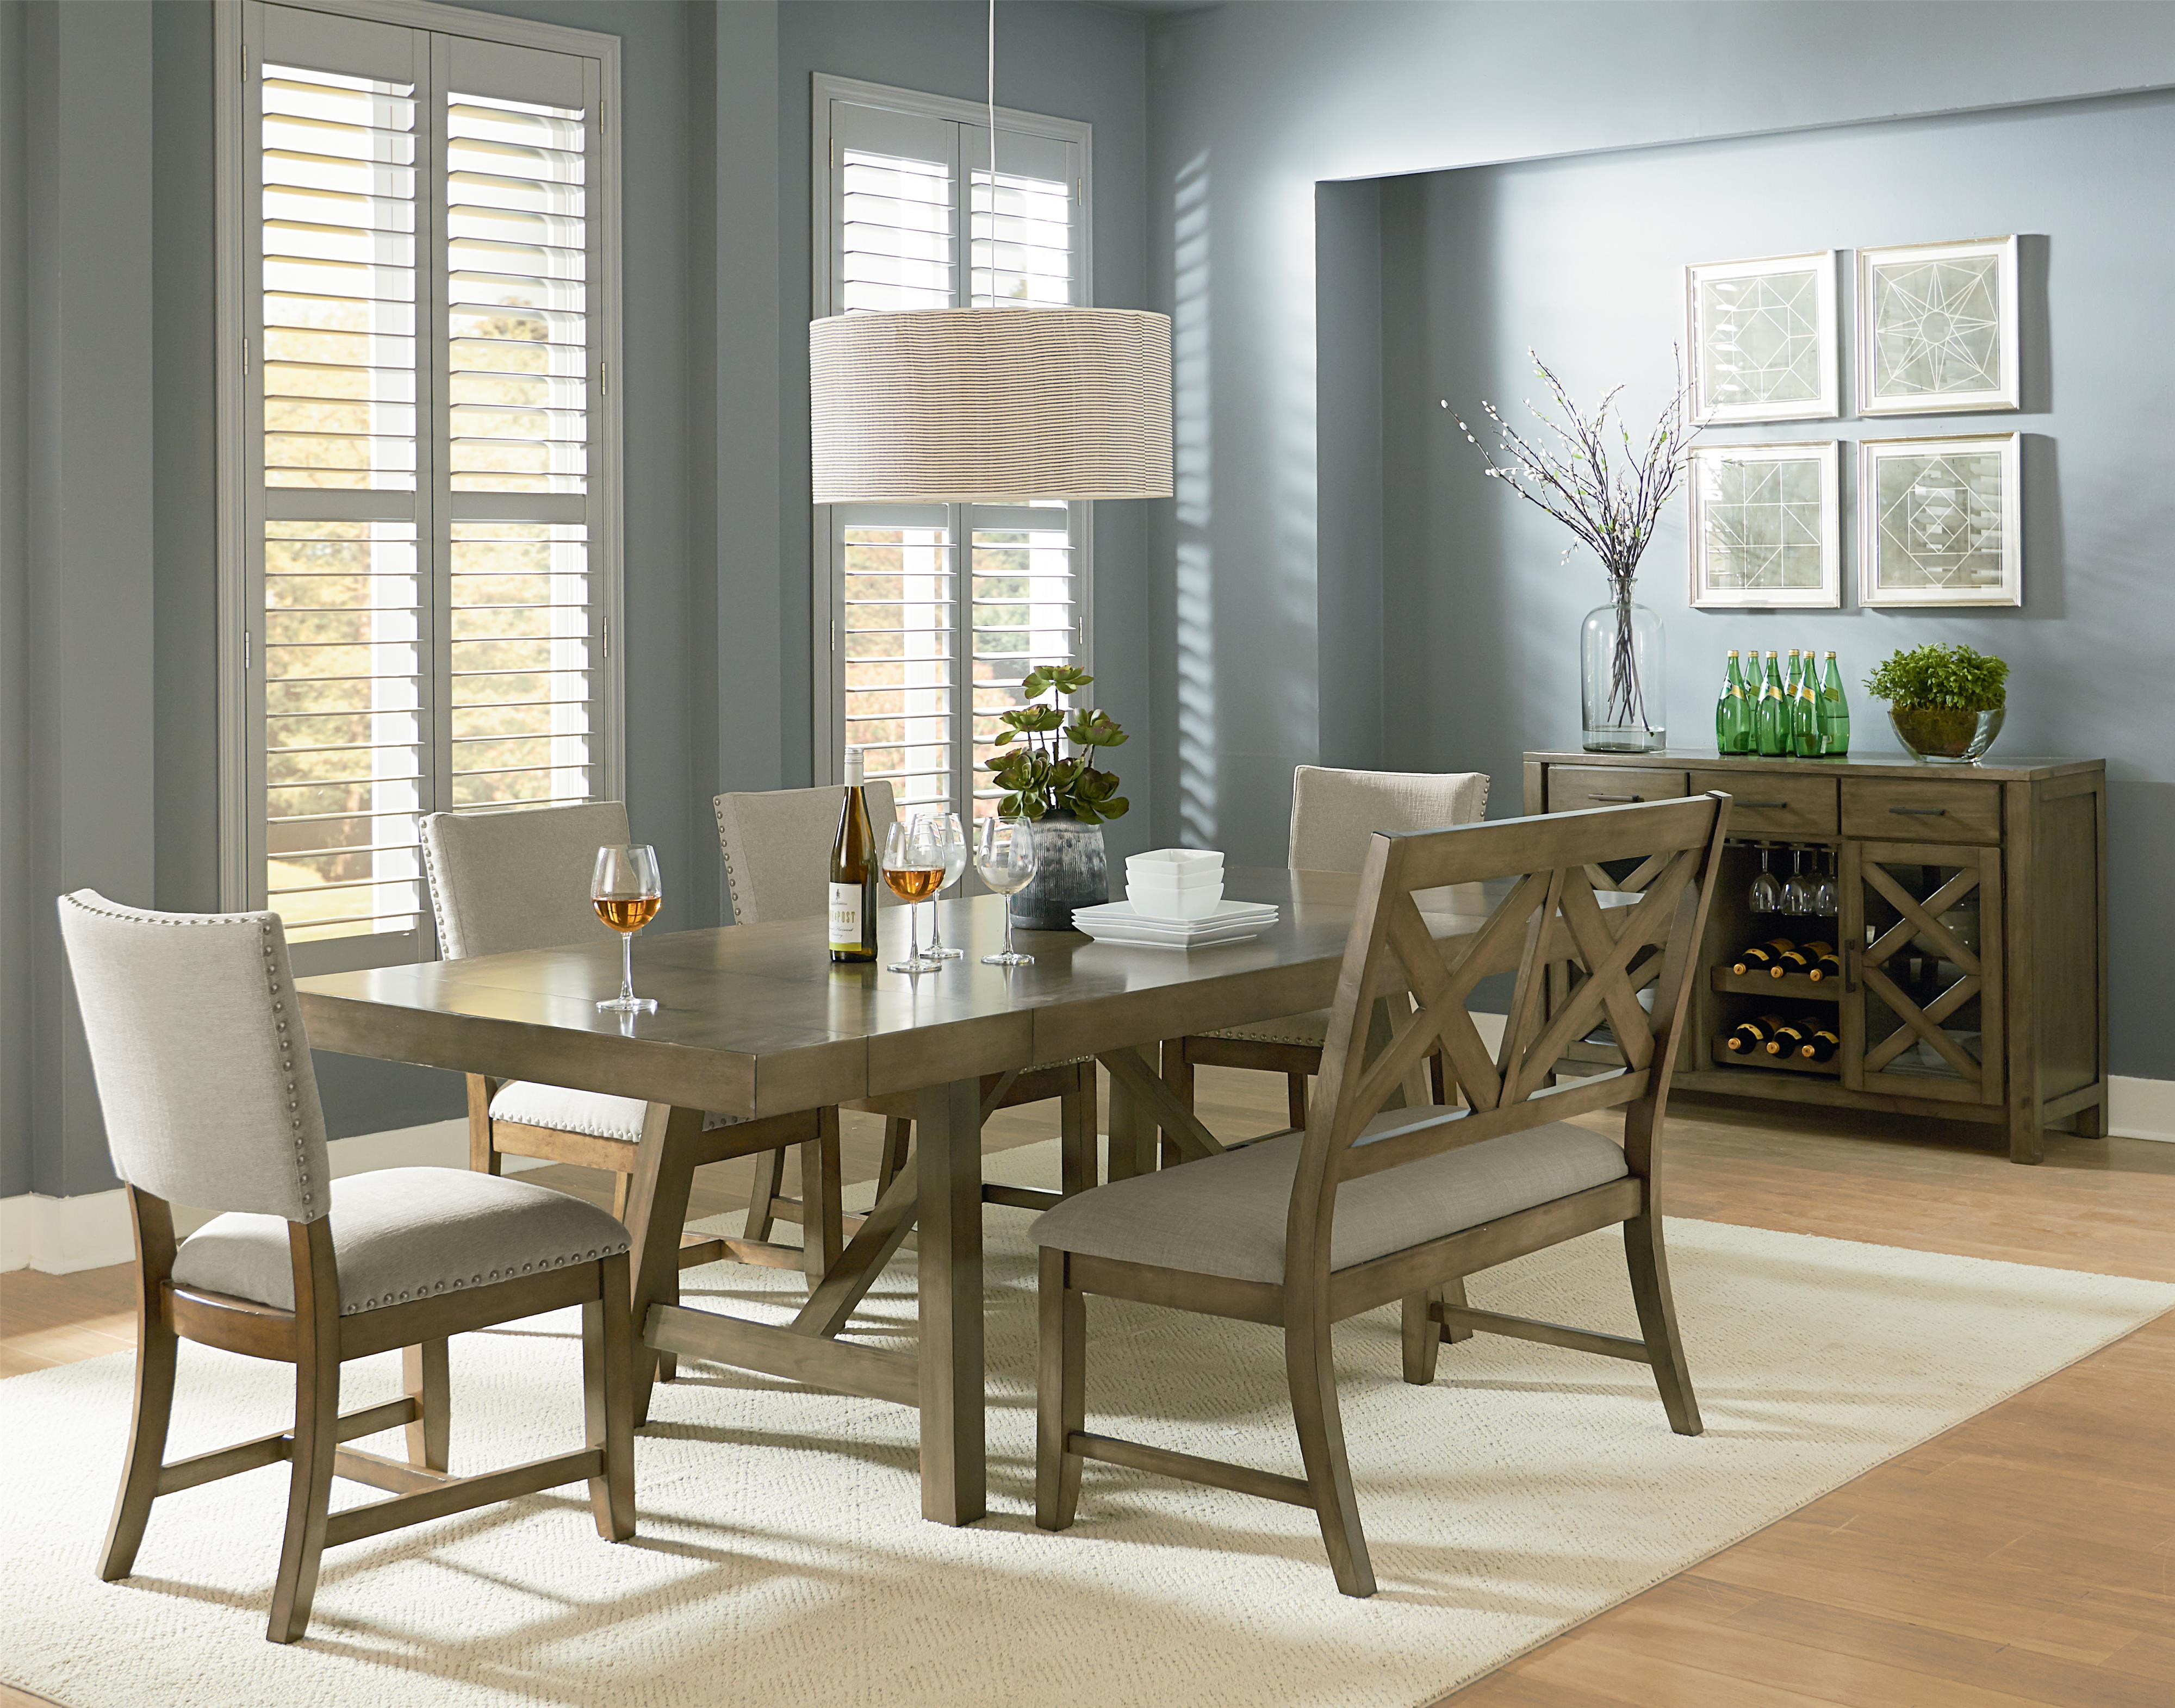 Standard Furniture Omaha Grey Casual Dining Room Group - Item Number: 16680 Dining Room Group 3